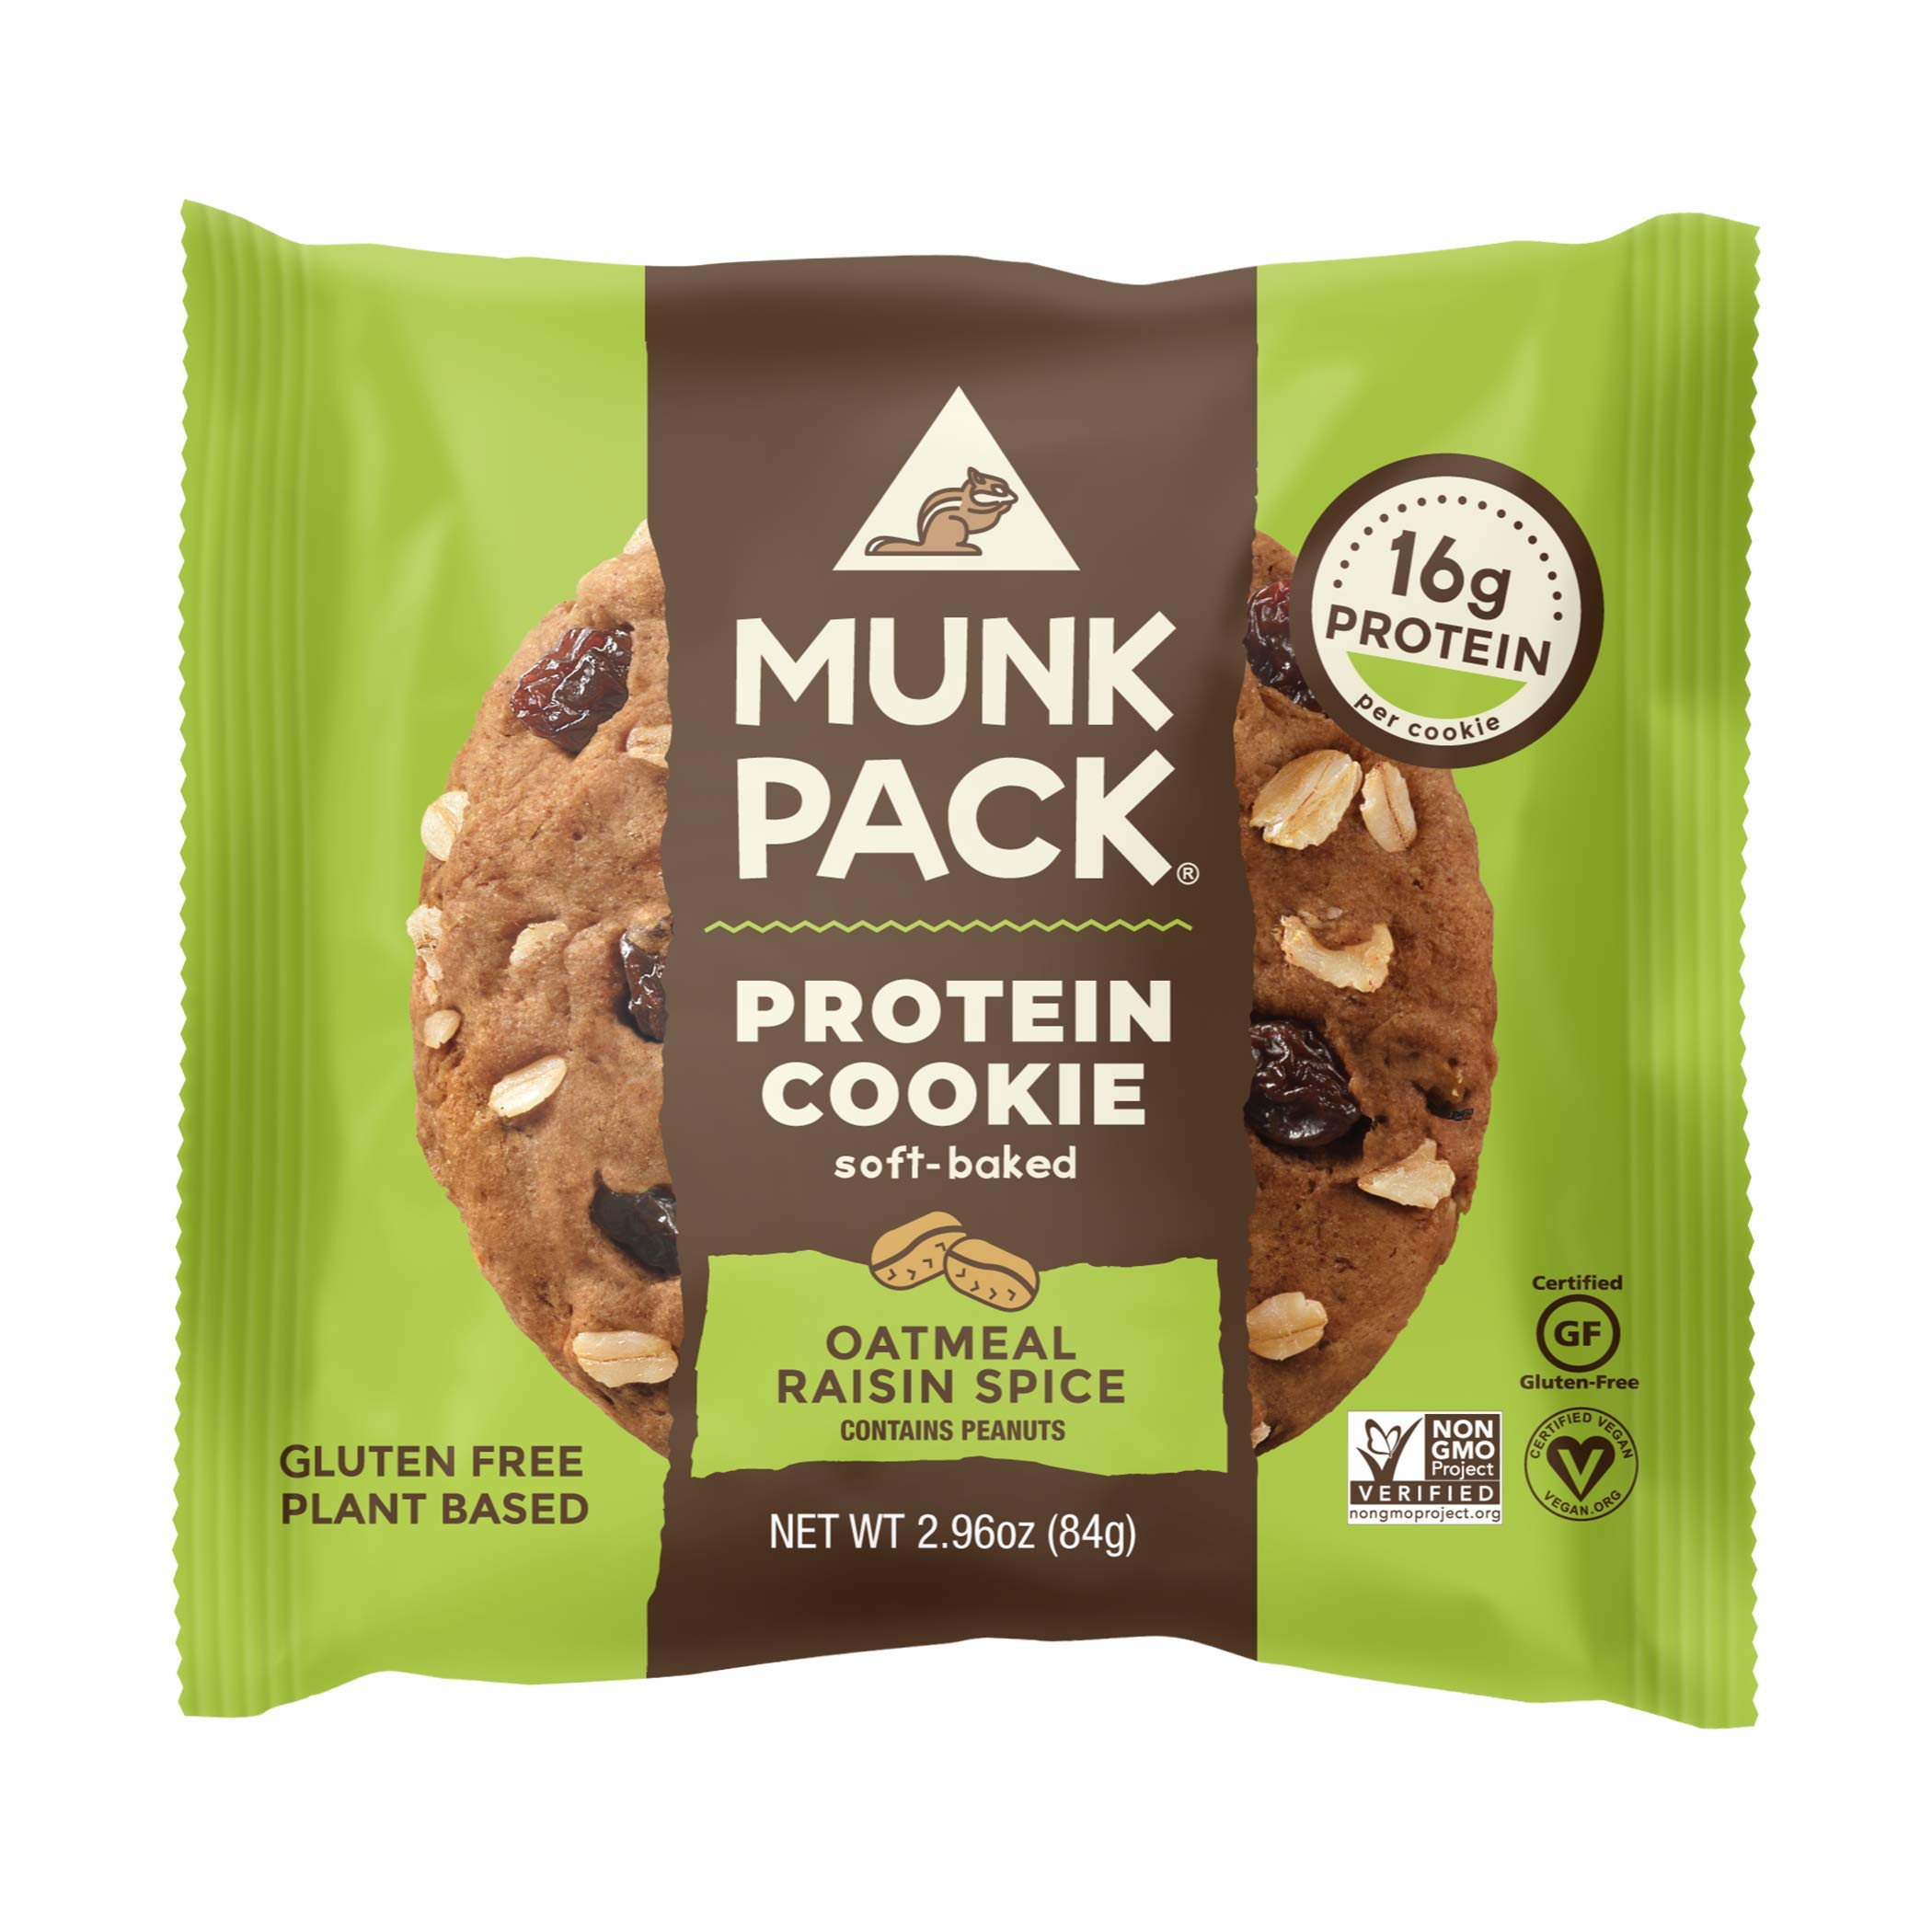 Munk Pack Protein Cookie (Pack of 12, Oatmeal Raisin Spice)